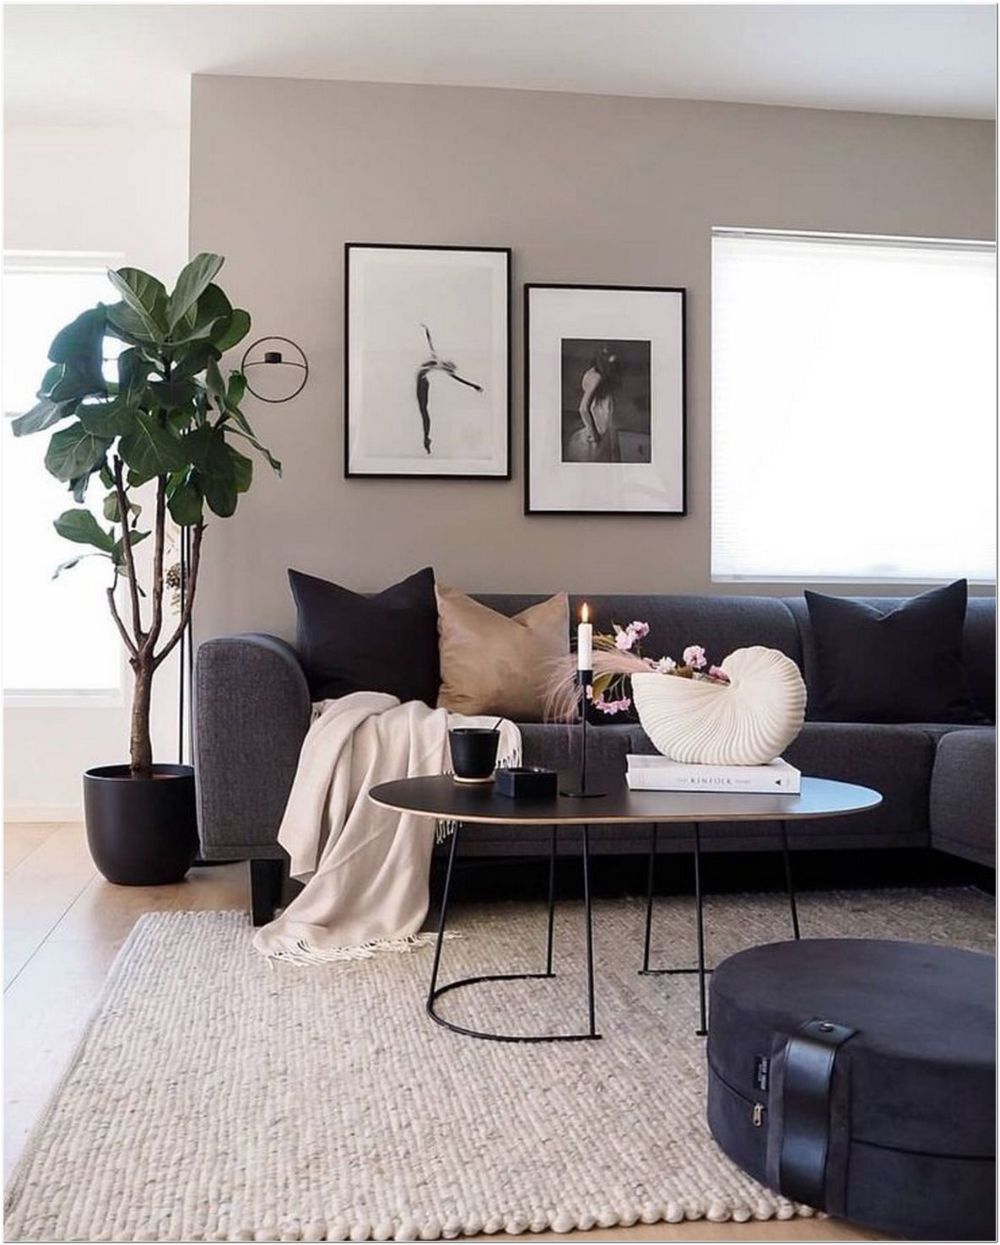 83 Comfy Living Room Decorating Ideas That Looks Amazing 15 In 2020 Decor Home Living Room Living Room Decor Apartment Comfy Living Room #pictures #of #living #room #decorating #ideas